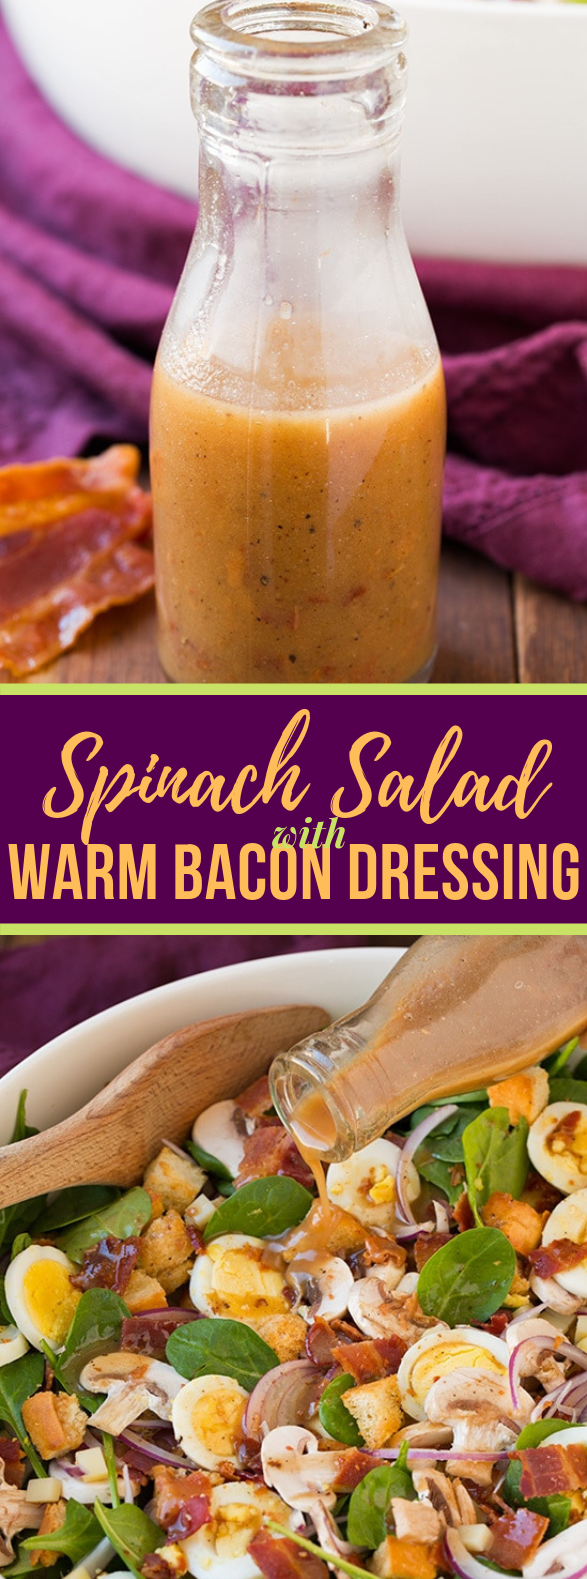 Spinach Salad with Warm Bacon Dressing #vegetarian #saladdressing